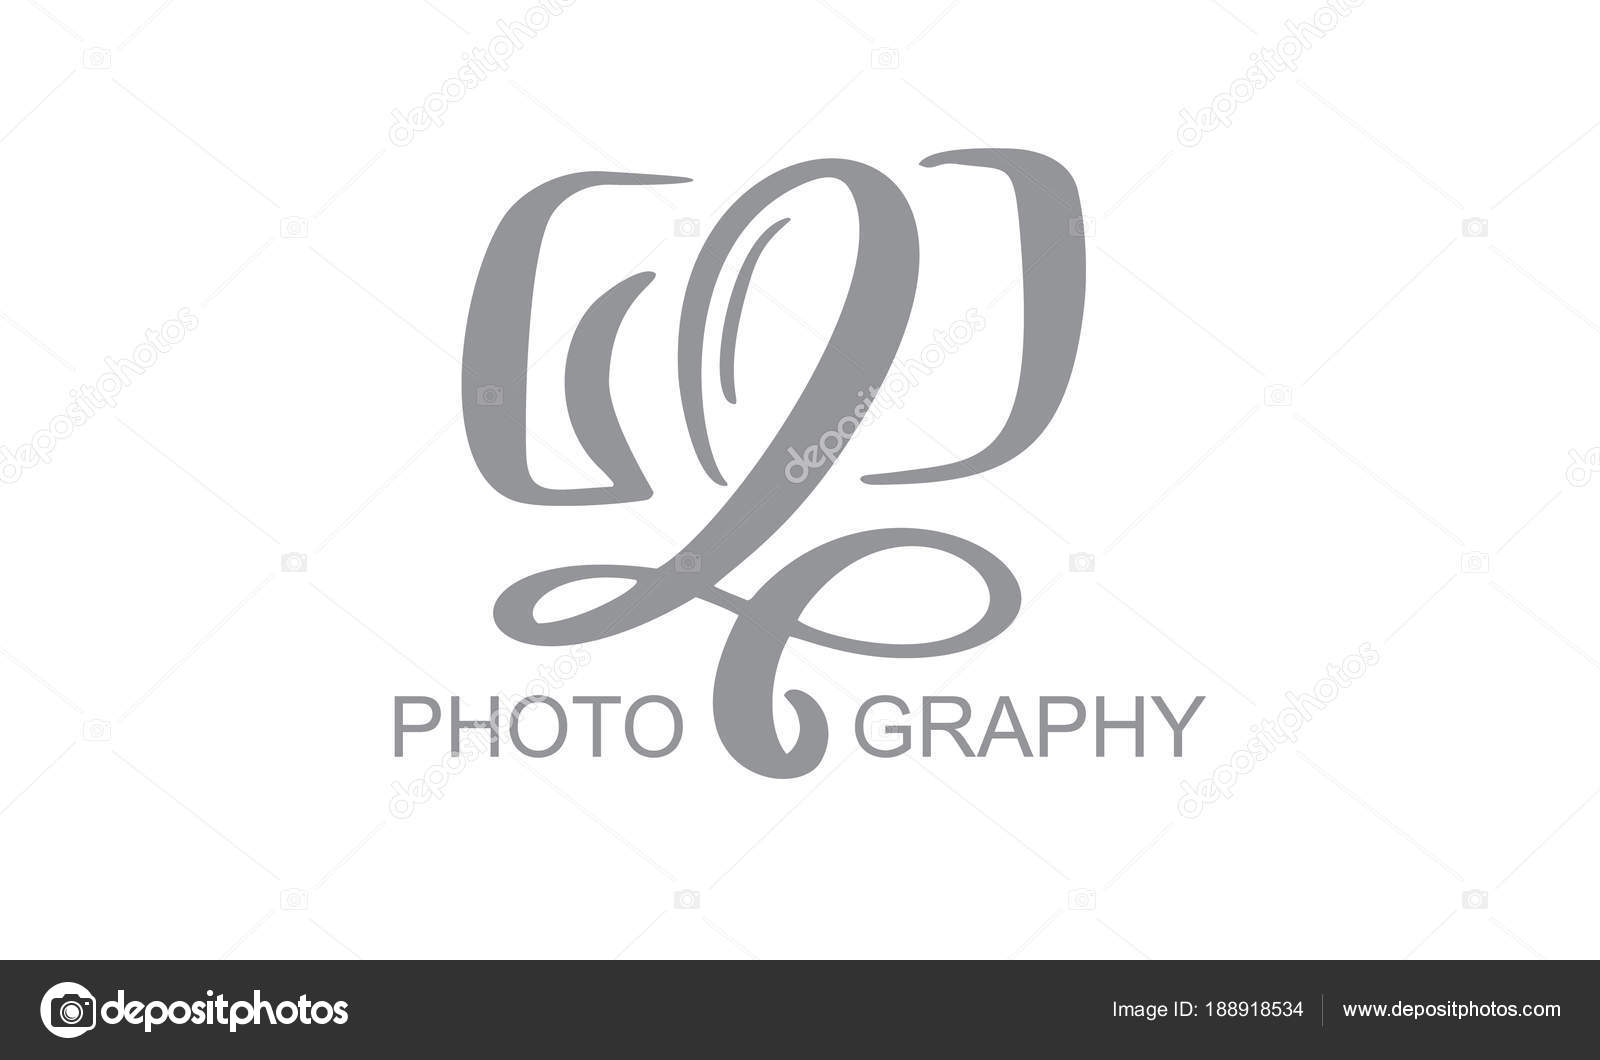 camera photography logo icon vector template calligraphic